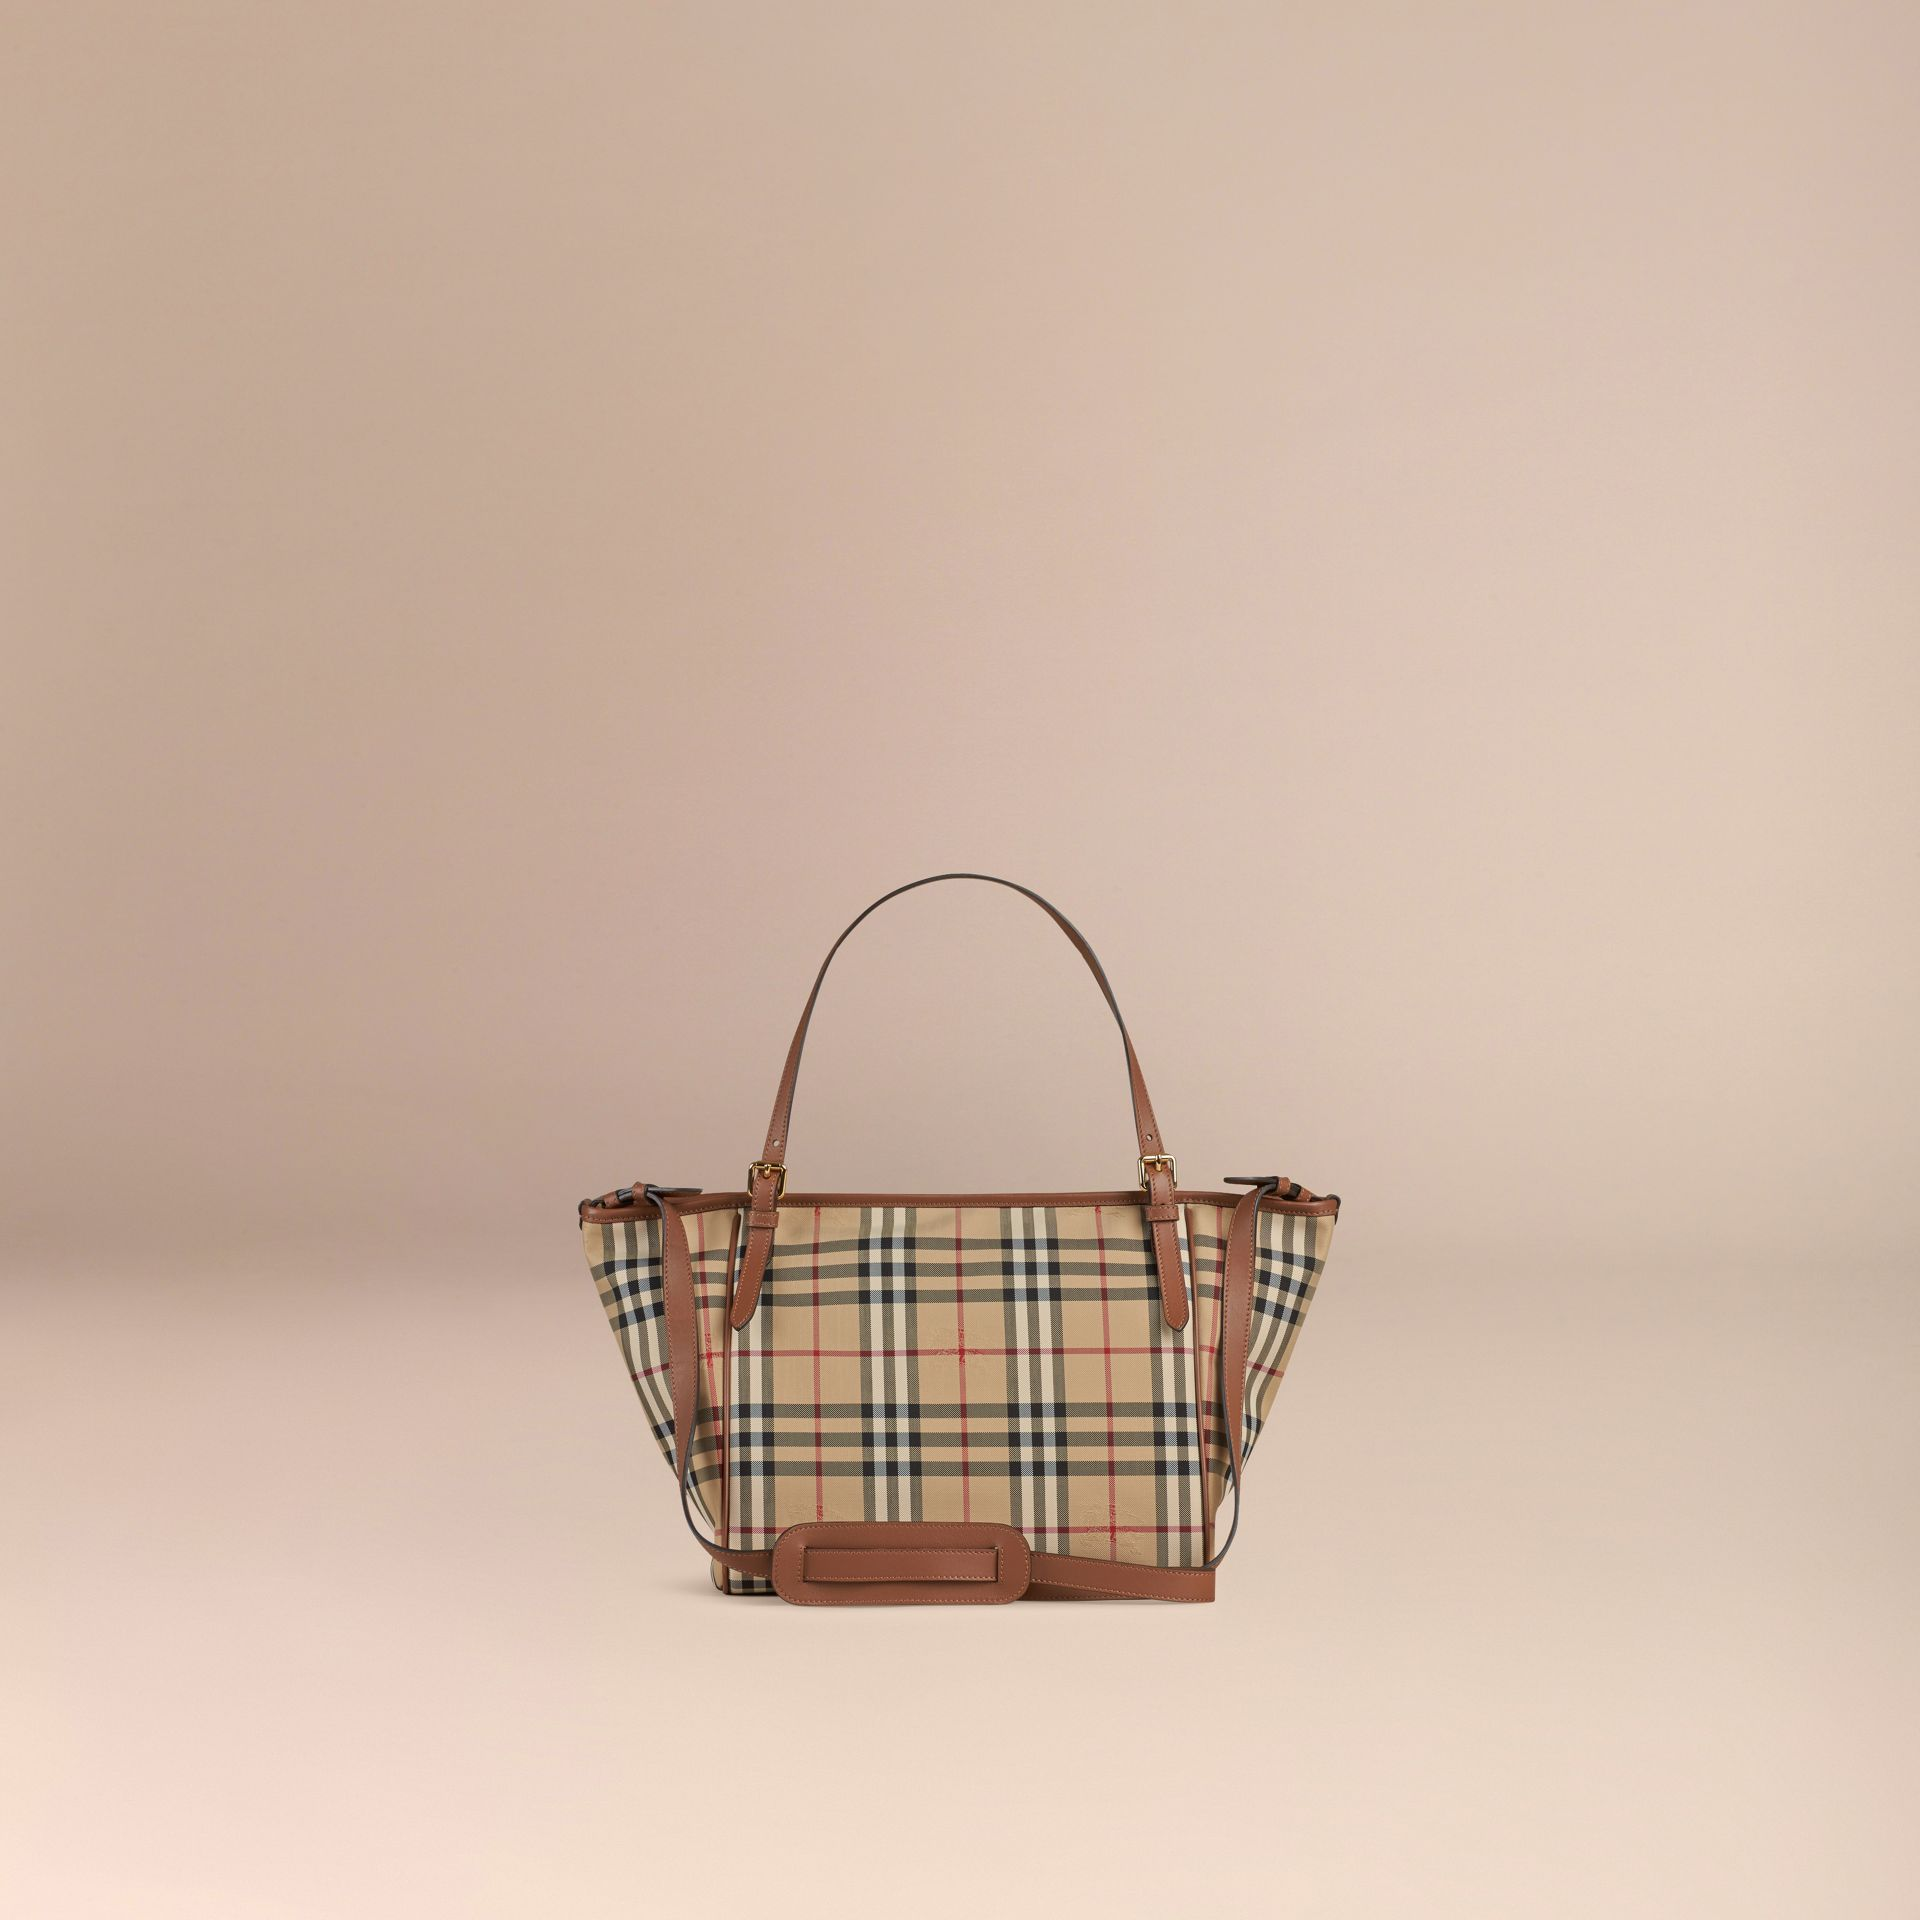 Horseferry Check Baby Changing Tote Bag in Tan | Burberry - gallery image 5